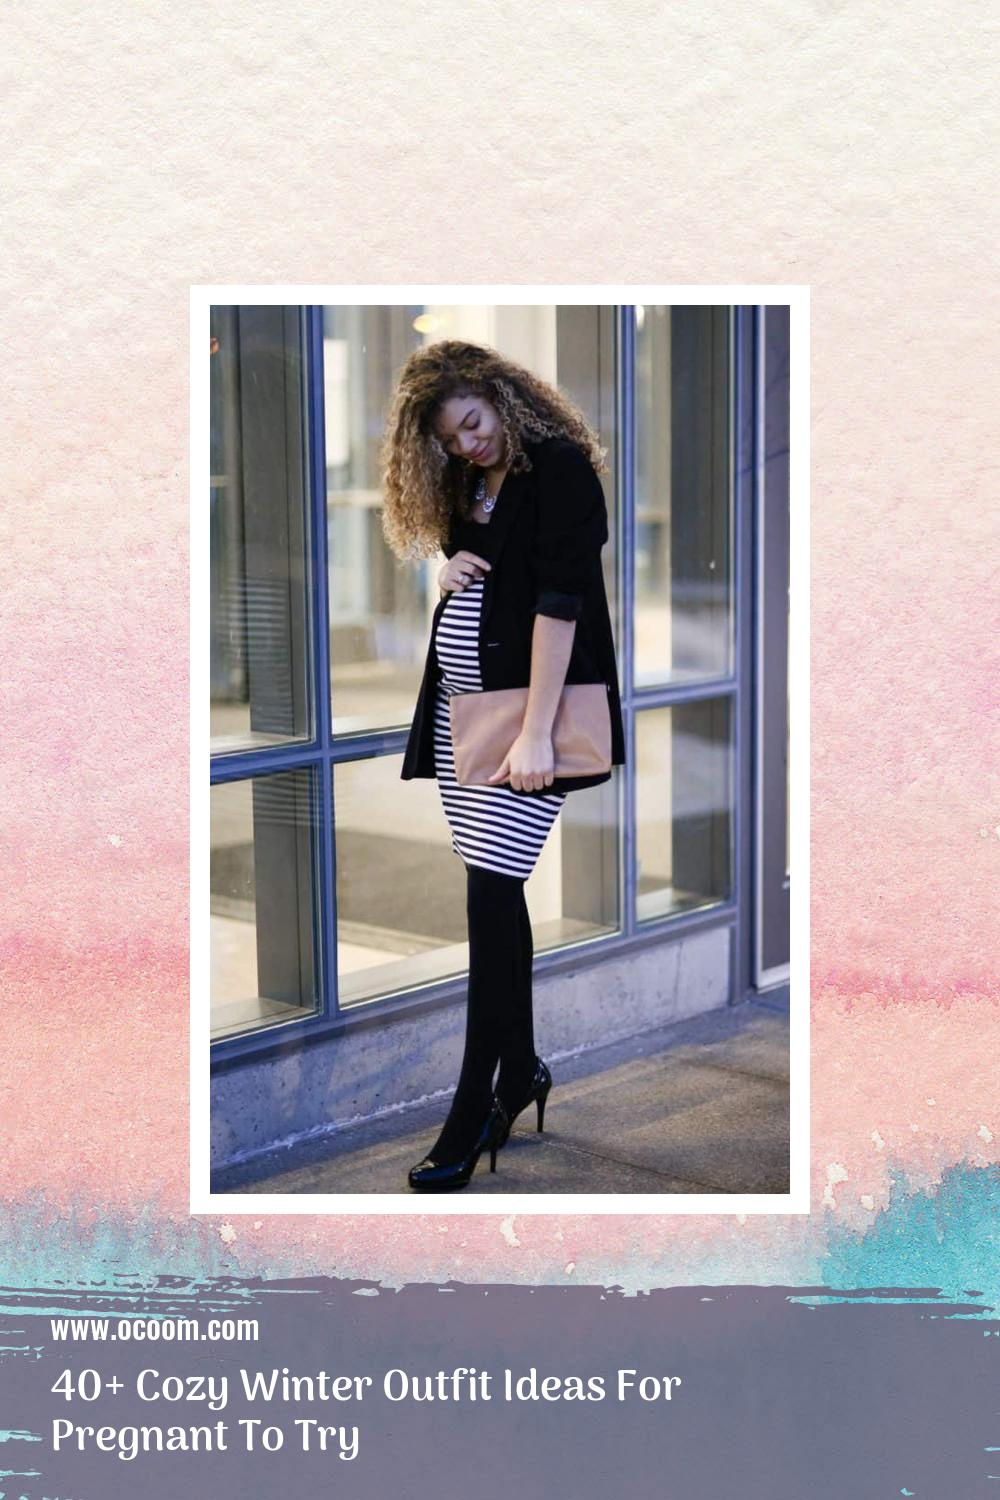 40+ Cozy Winter Outfit Ideas For Pregnant To Try 26